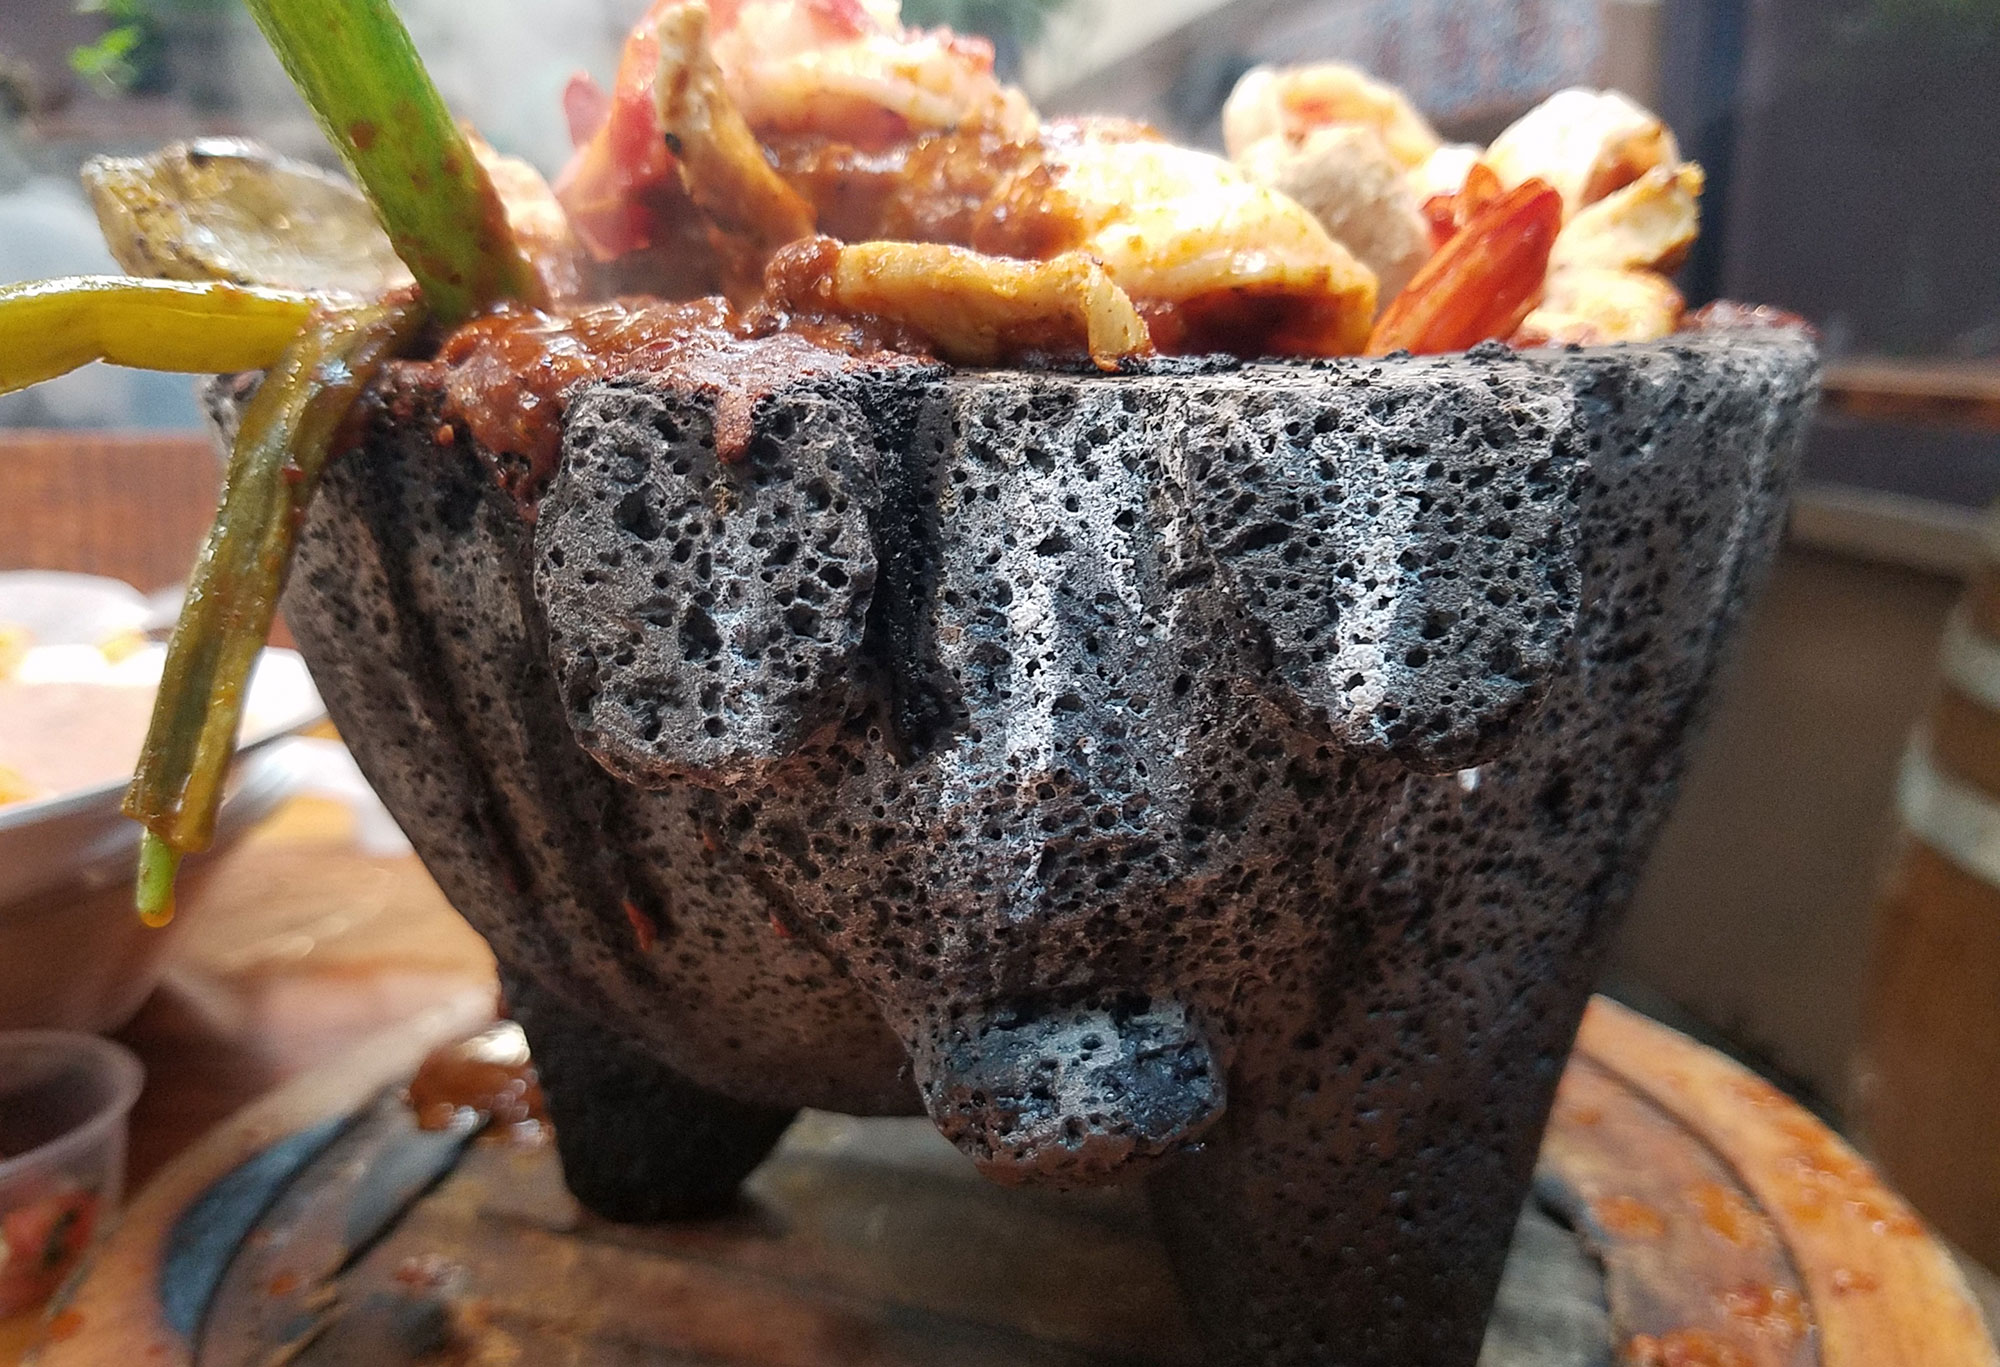 Molcajete Mixto in Santa Rosa. Offbeat eats in Sonoma County. Heather Irwin/PD